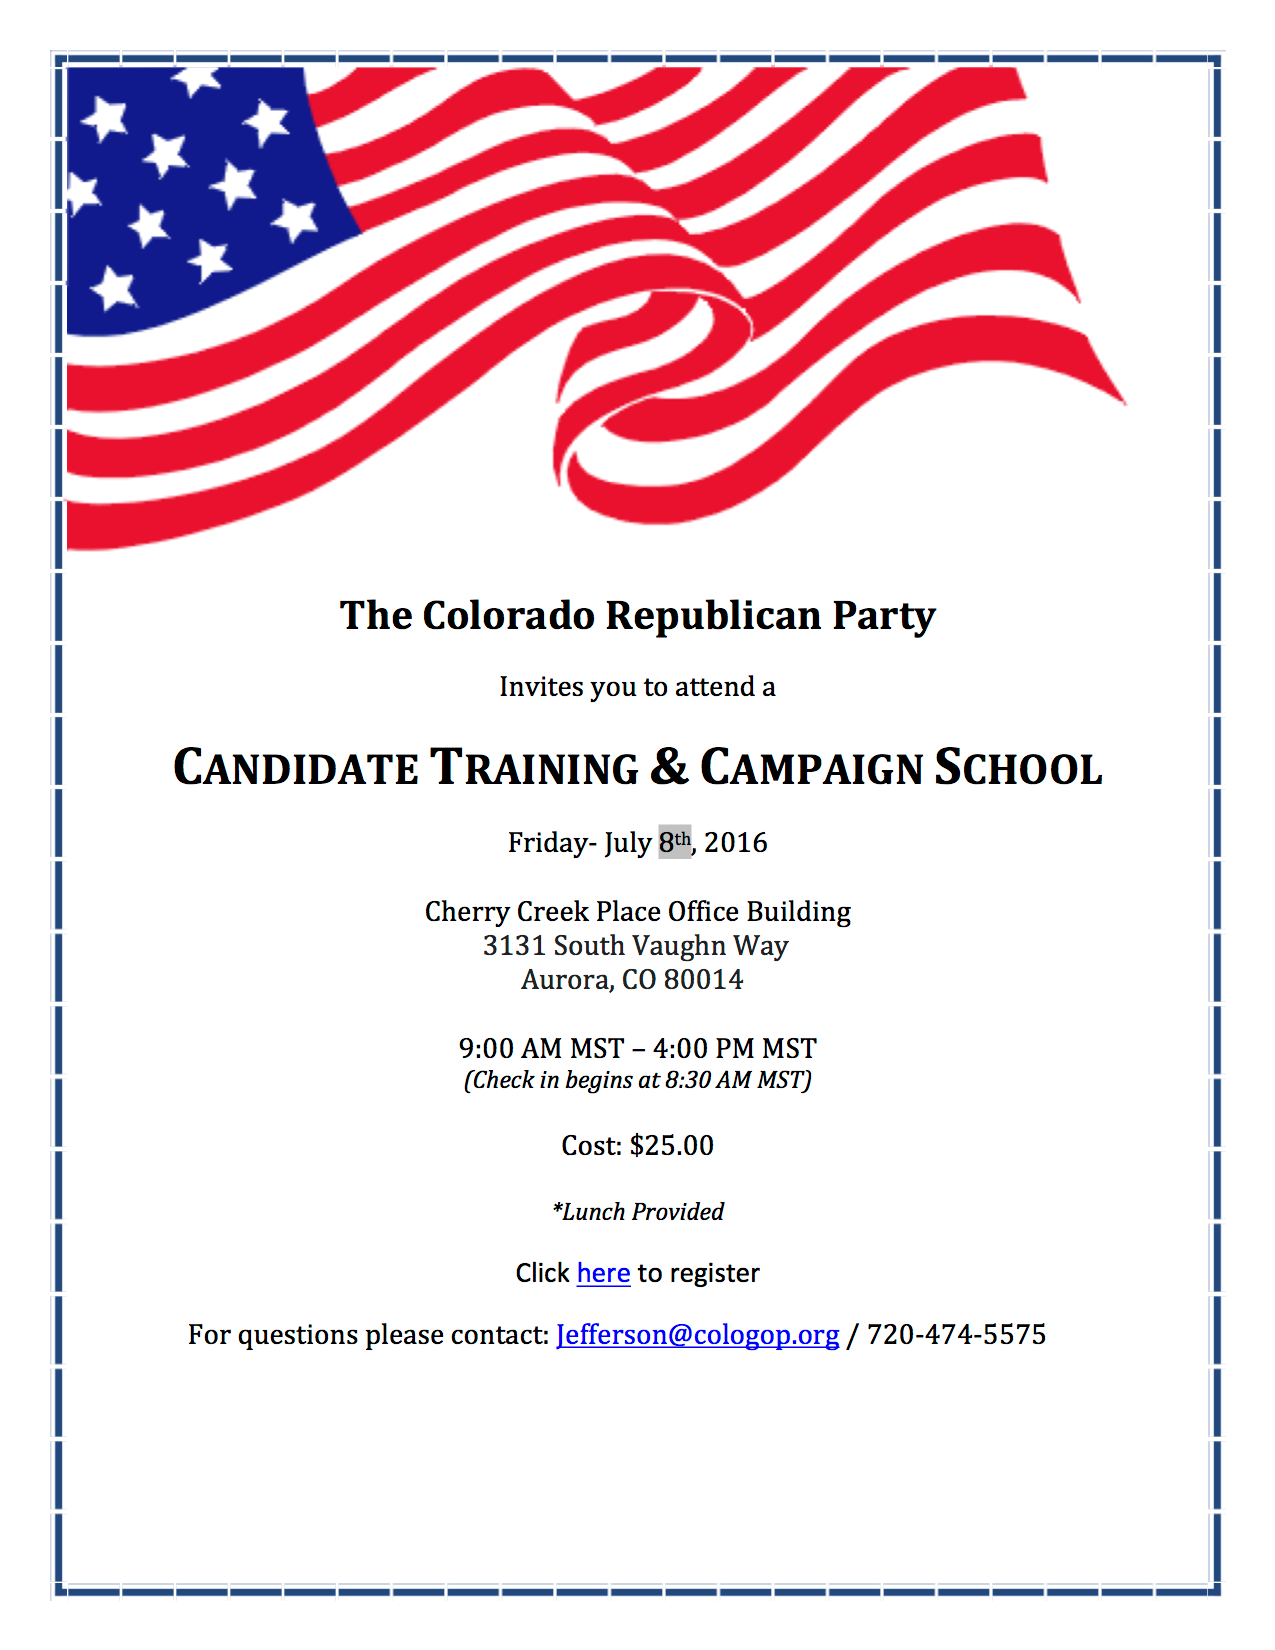 Candidate Training & Campaign School